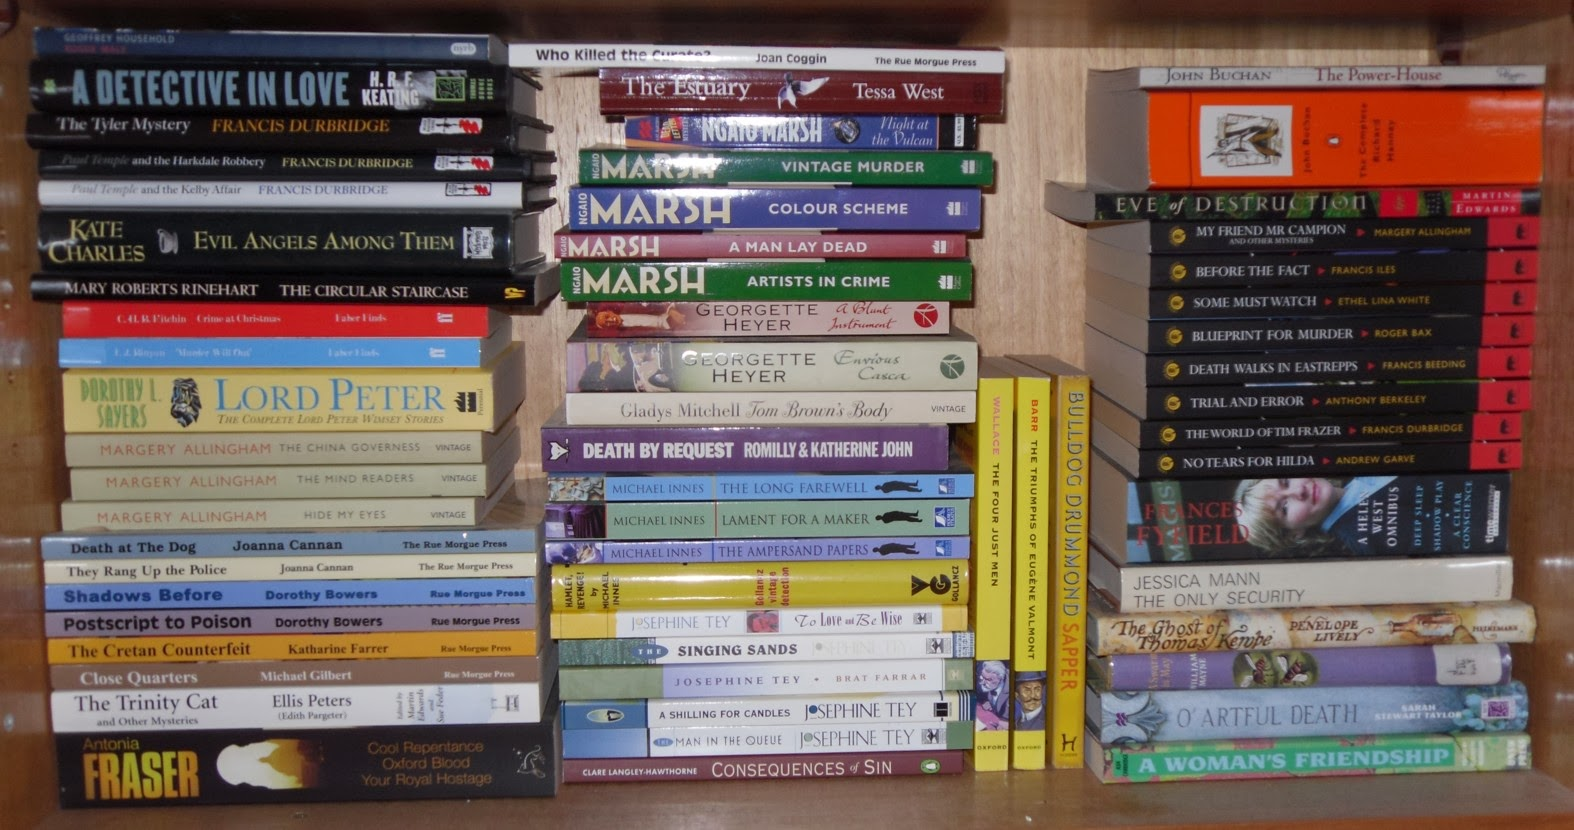 Virago (as Well As Some Books On Mostly Women's Literature You Can See By  The Spine Labels That I Rescued A Few Of These From My Library When They  Were